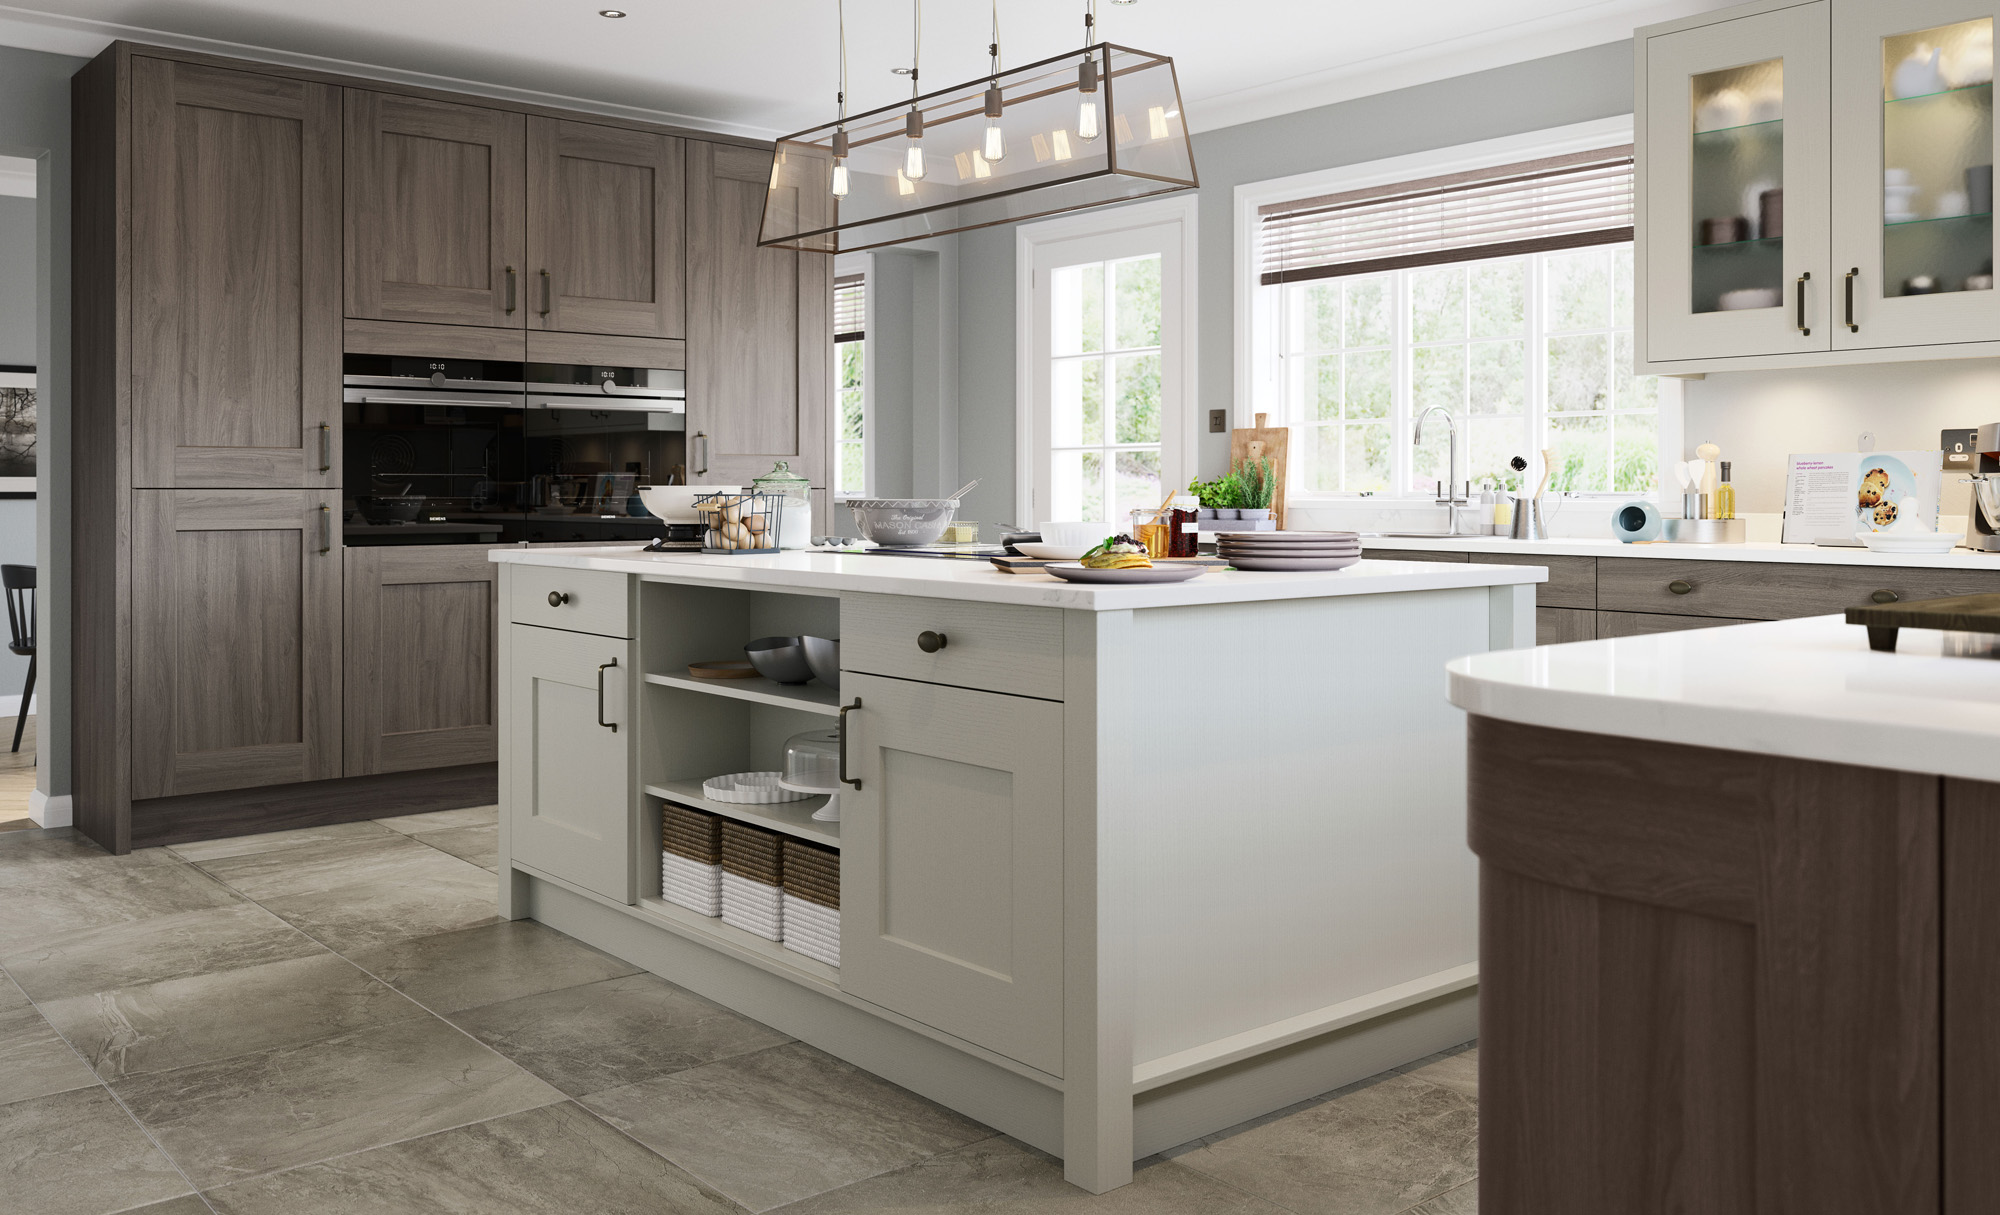 Clonmel Shaker Style Kitchen in Painted Light Grey & Anthracite